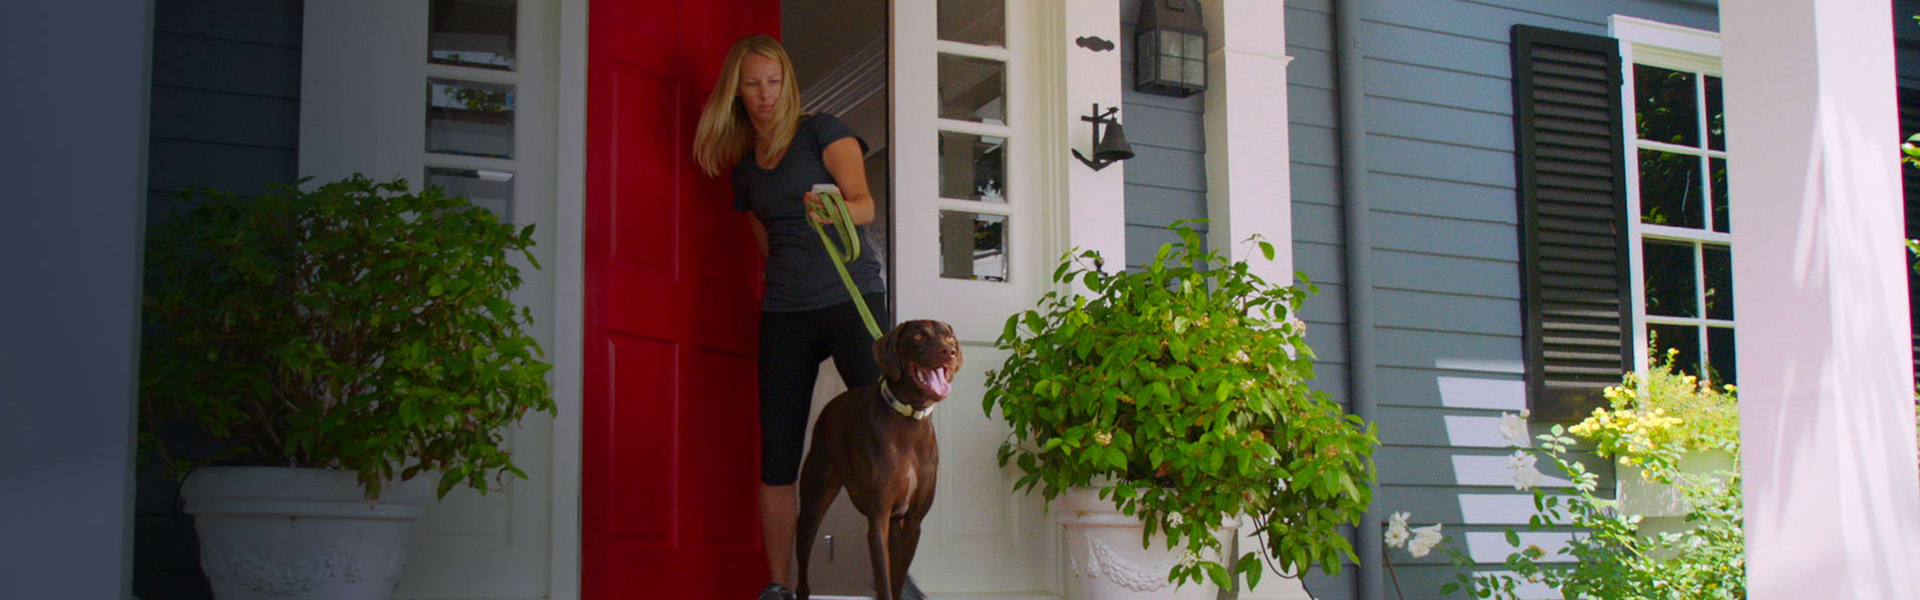 Women exiting her front door with her dog on a leash